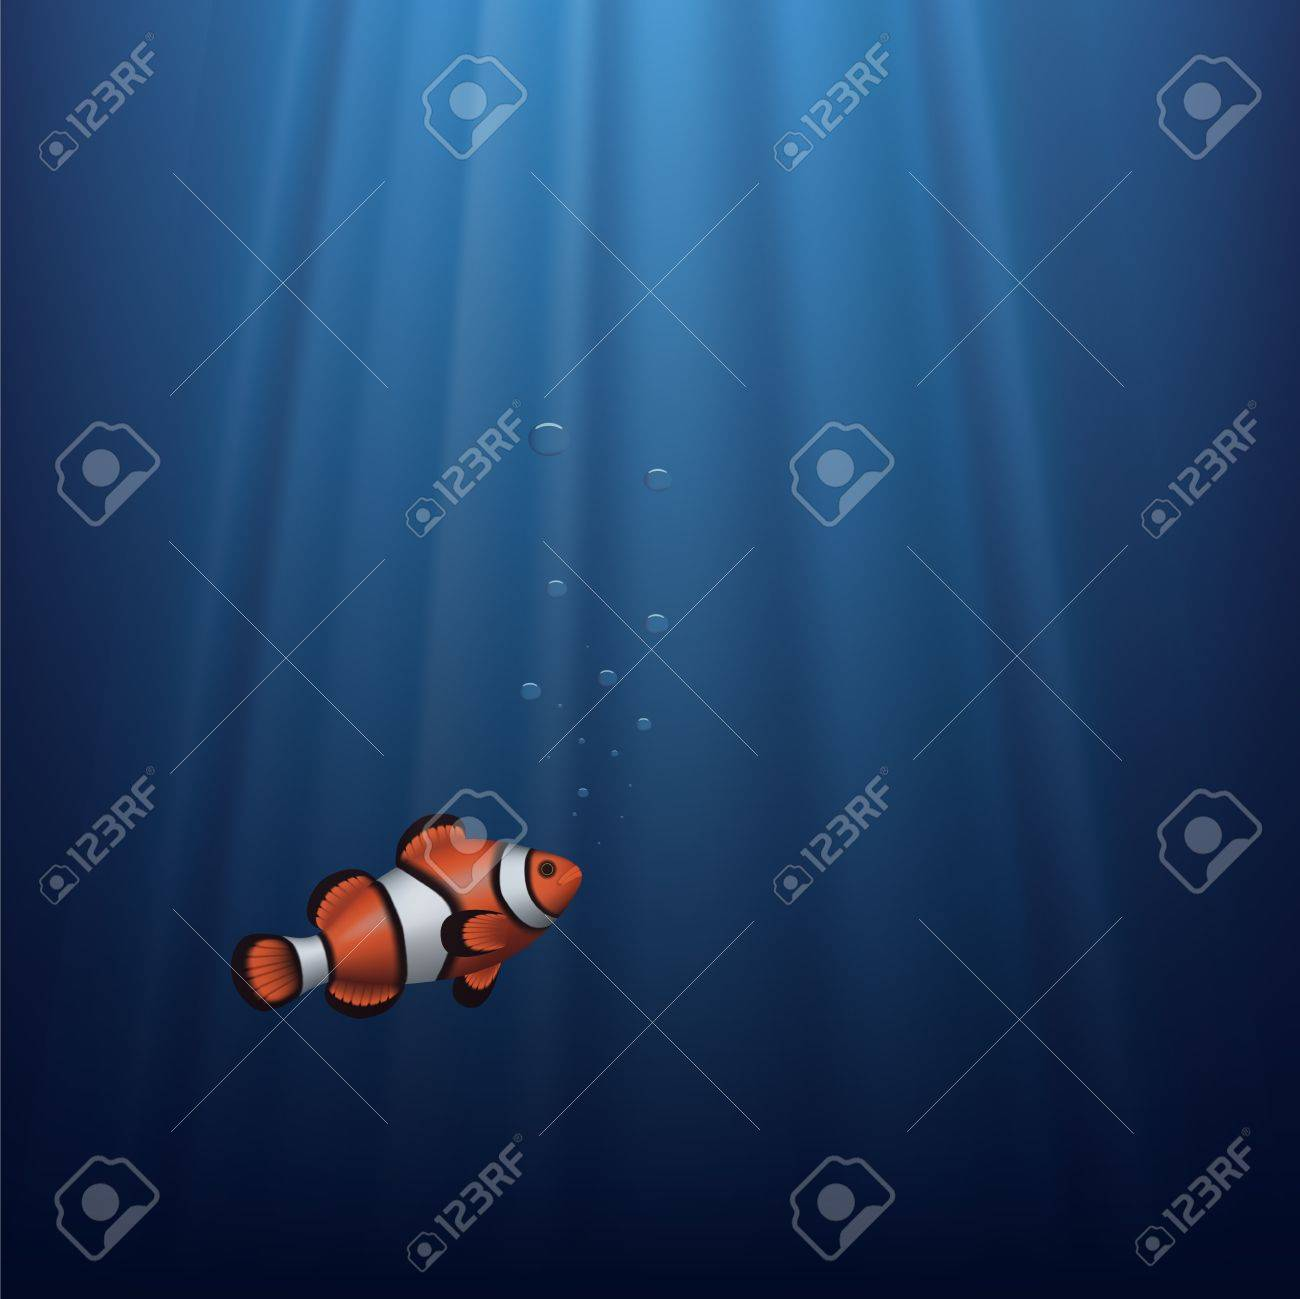 Layered vector illustration of a clownfish under water with sunbeam Stock Vector - 16490631